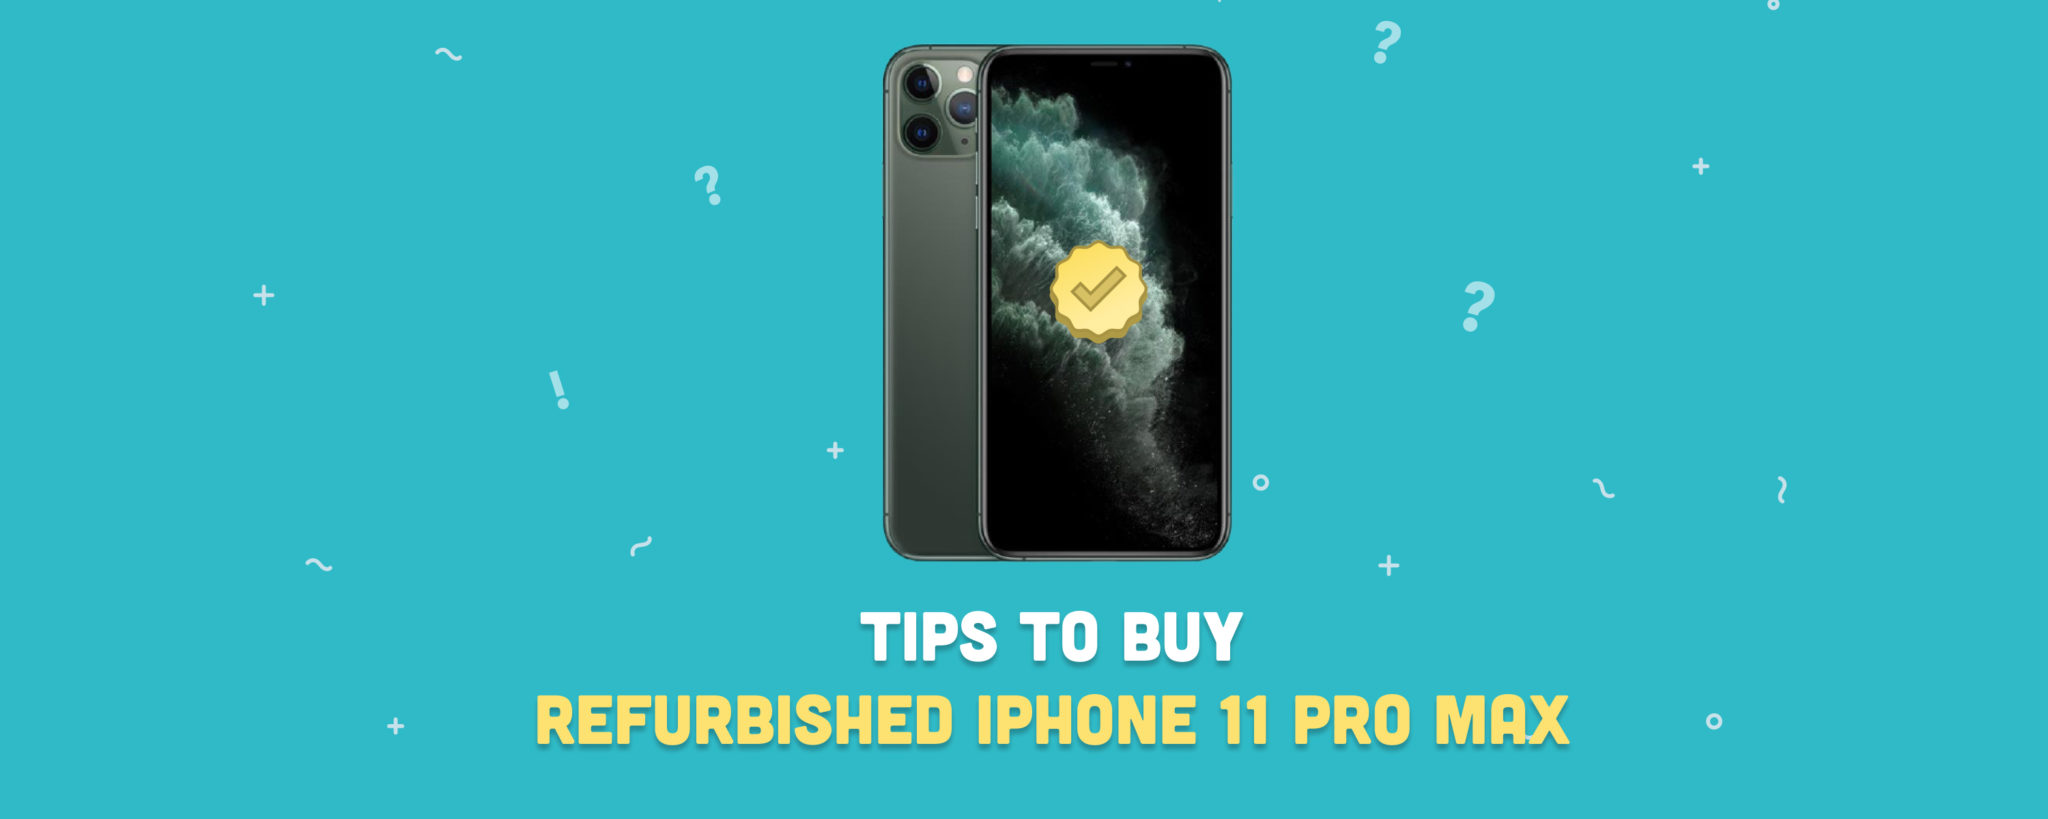 Top tips on How To Buy a Refurbished iPhone 11 Pro Max